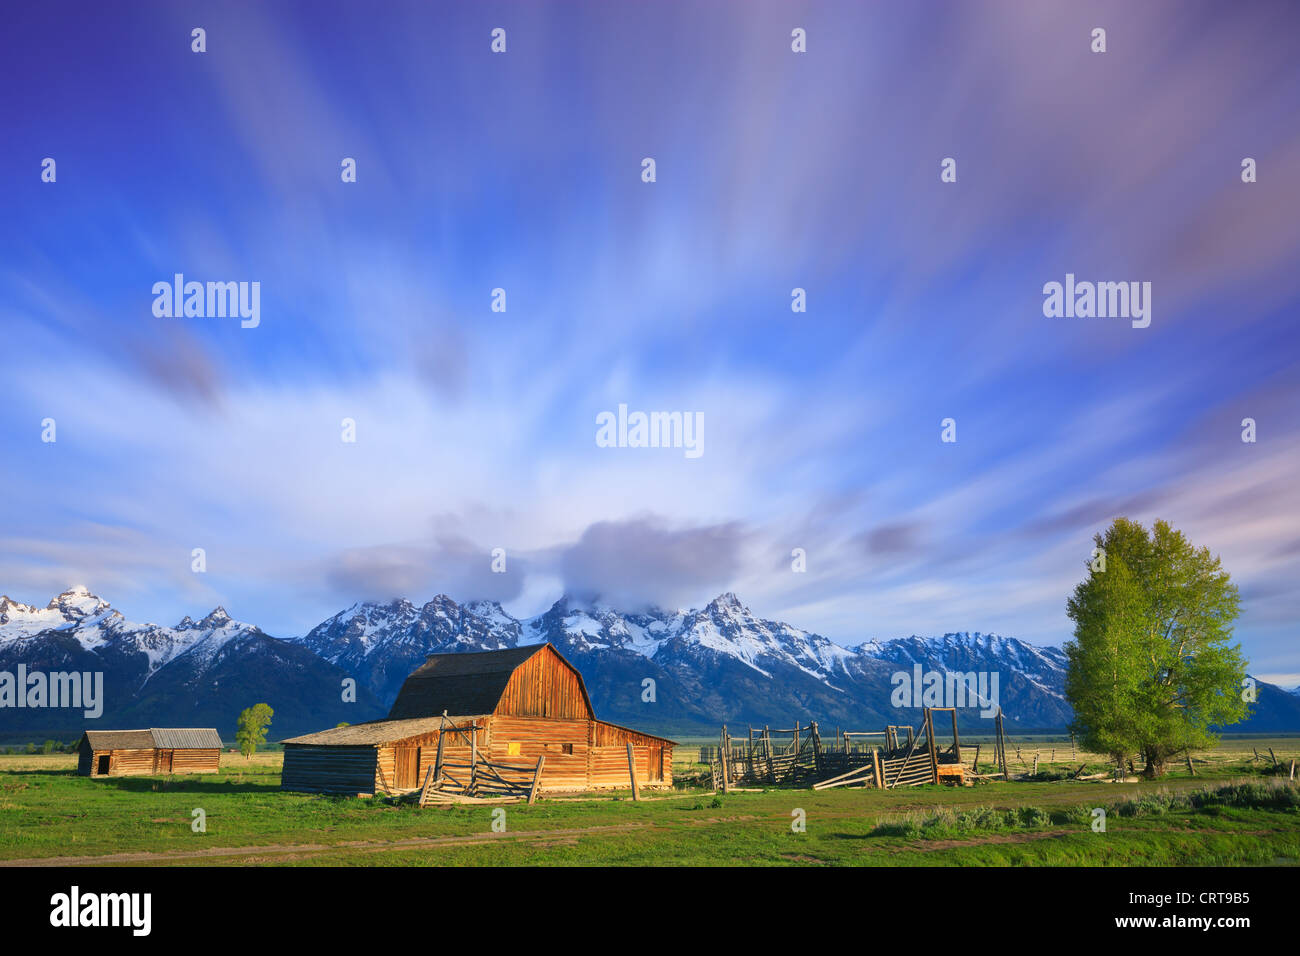 T.A Moulton Barn à Grand Teton National Park, Wyoming, USA Photo Stock